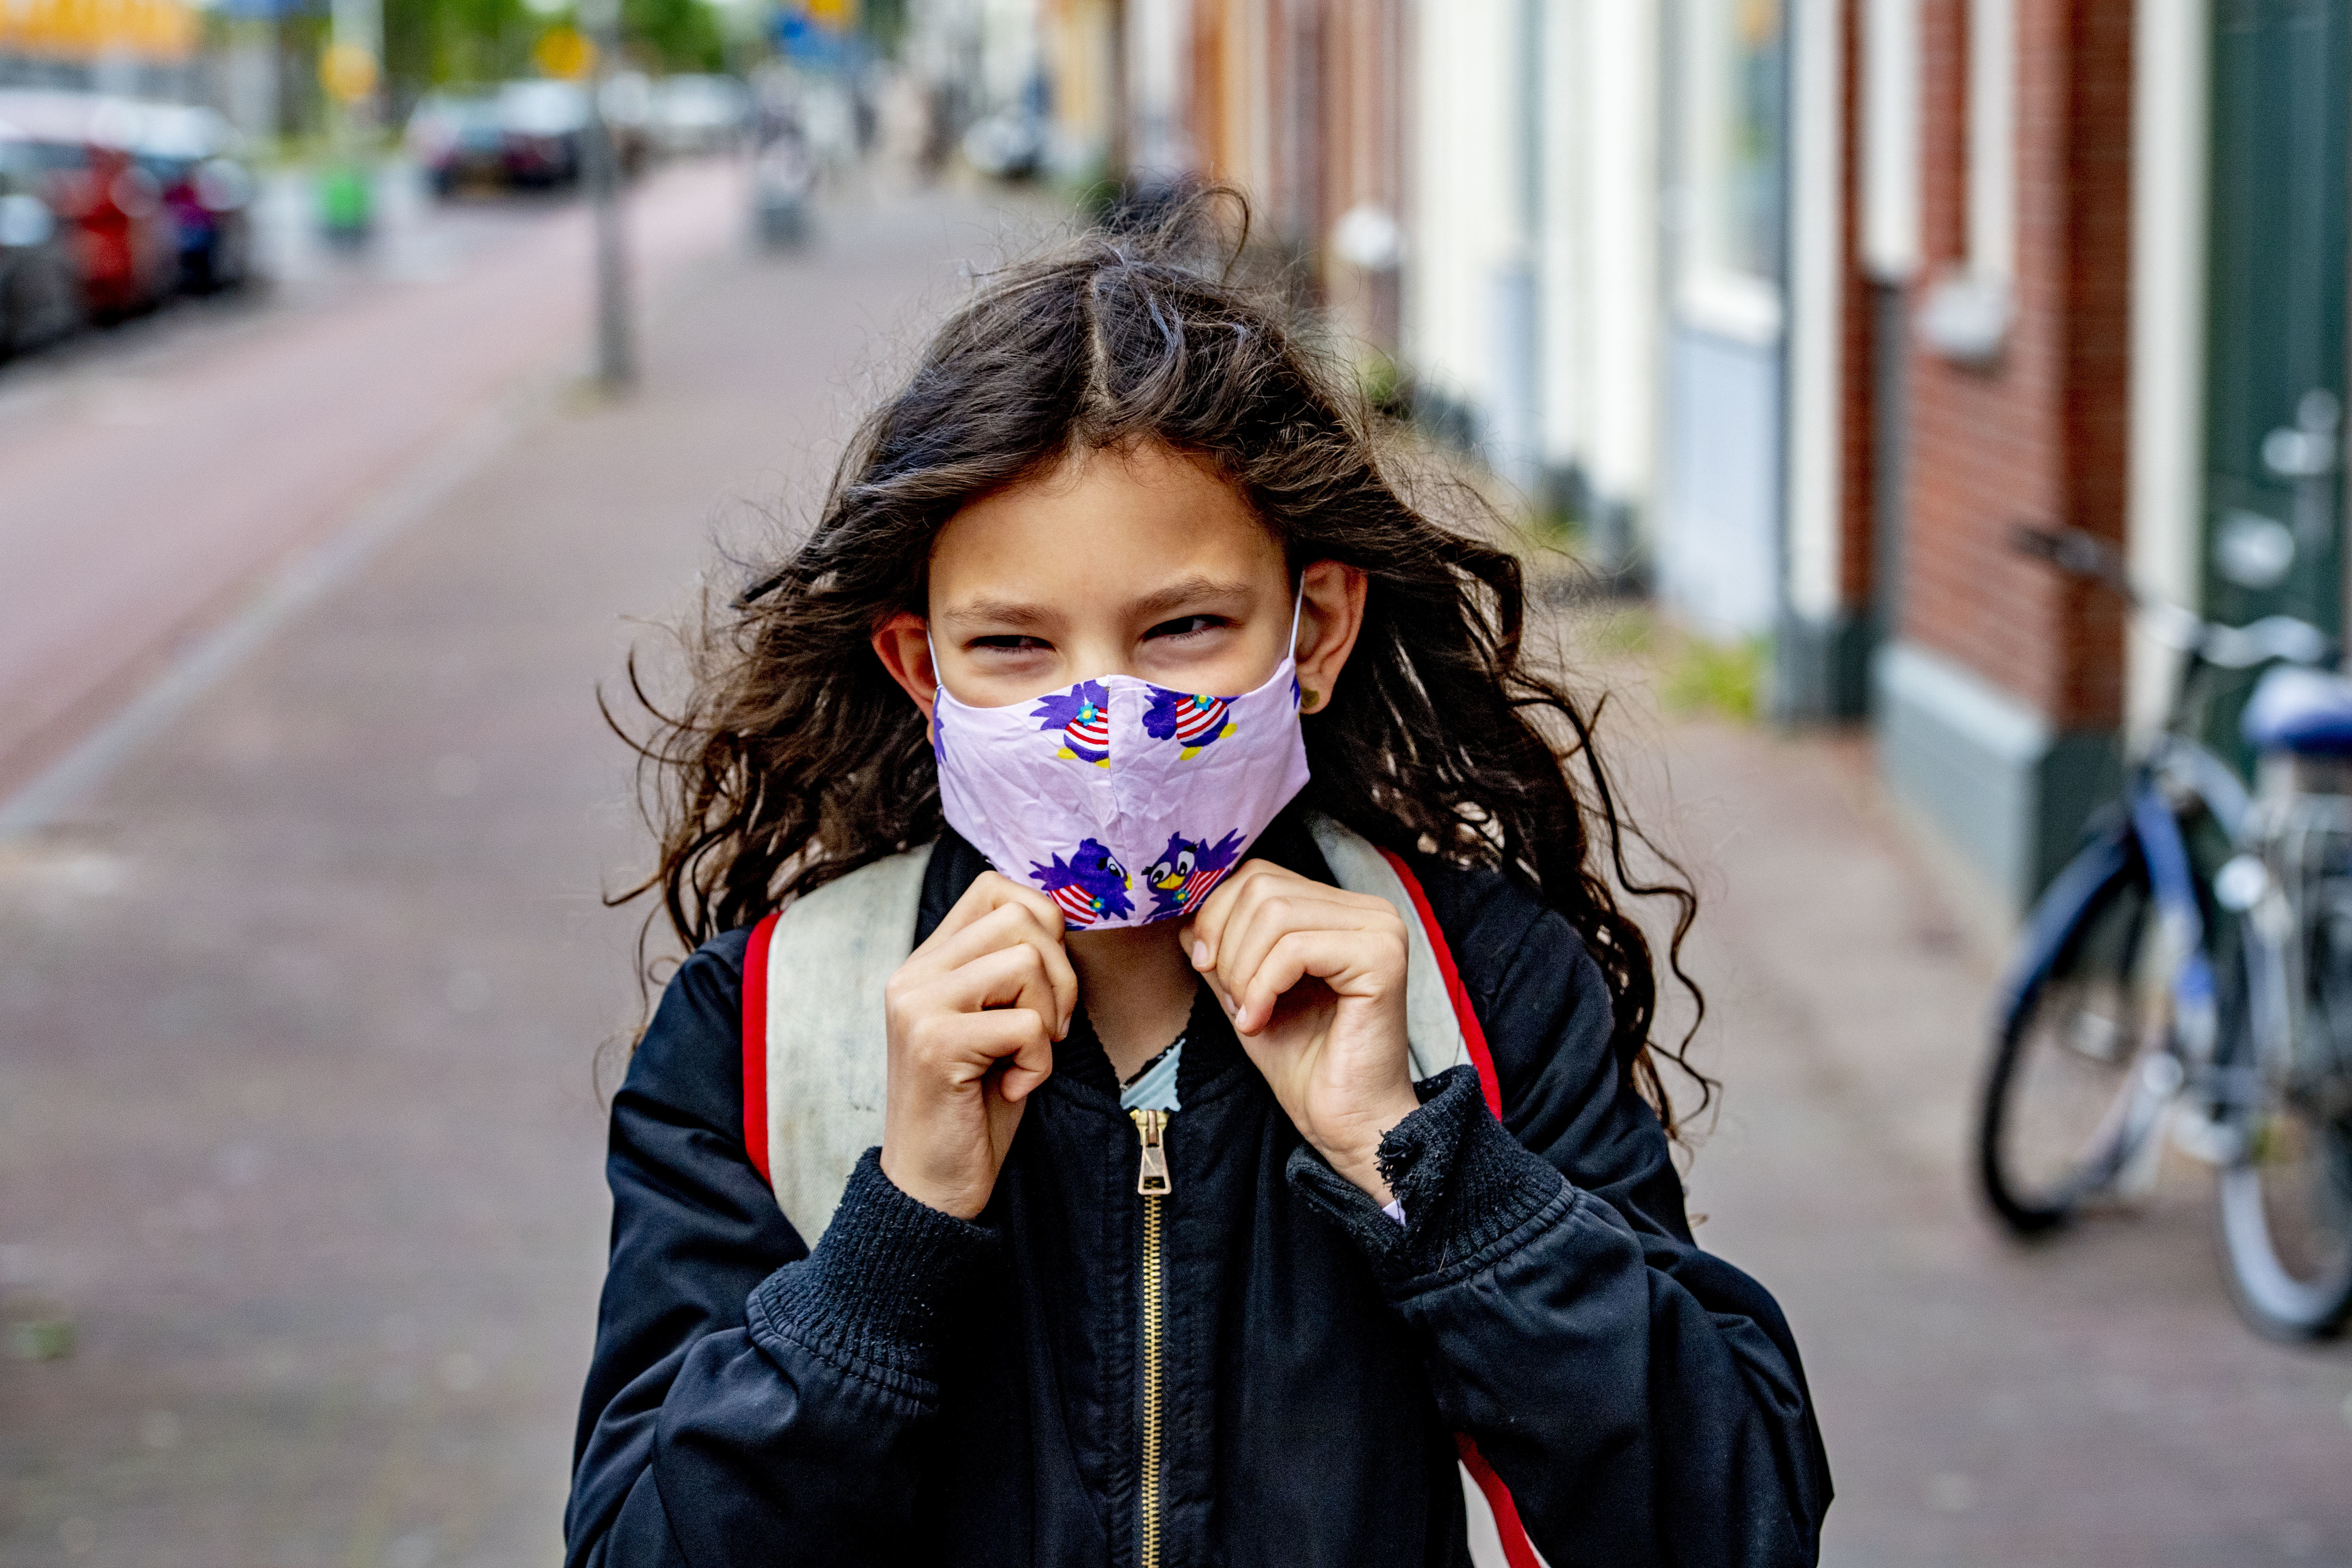 ROTTERDAM, NETHERLANDS - 2020/05/11: A kid going to school while wearing a face mask as a preventive measure against the spread of Coronavirus (COVID-19) crisis. Children go back to school in the Rotterdam district of Katendrecht, after the Coronavirus (COVID-19) lockdown crisis for half days. (Photo by Robin Utrecht/SOPA Images/LightRocket via Getty Images)